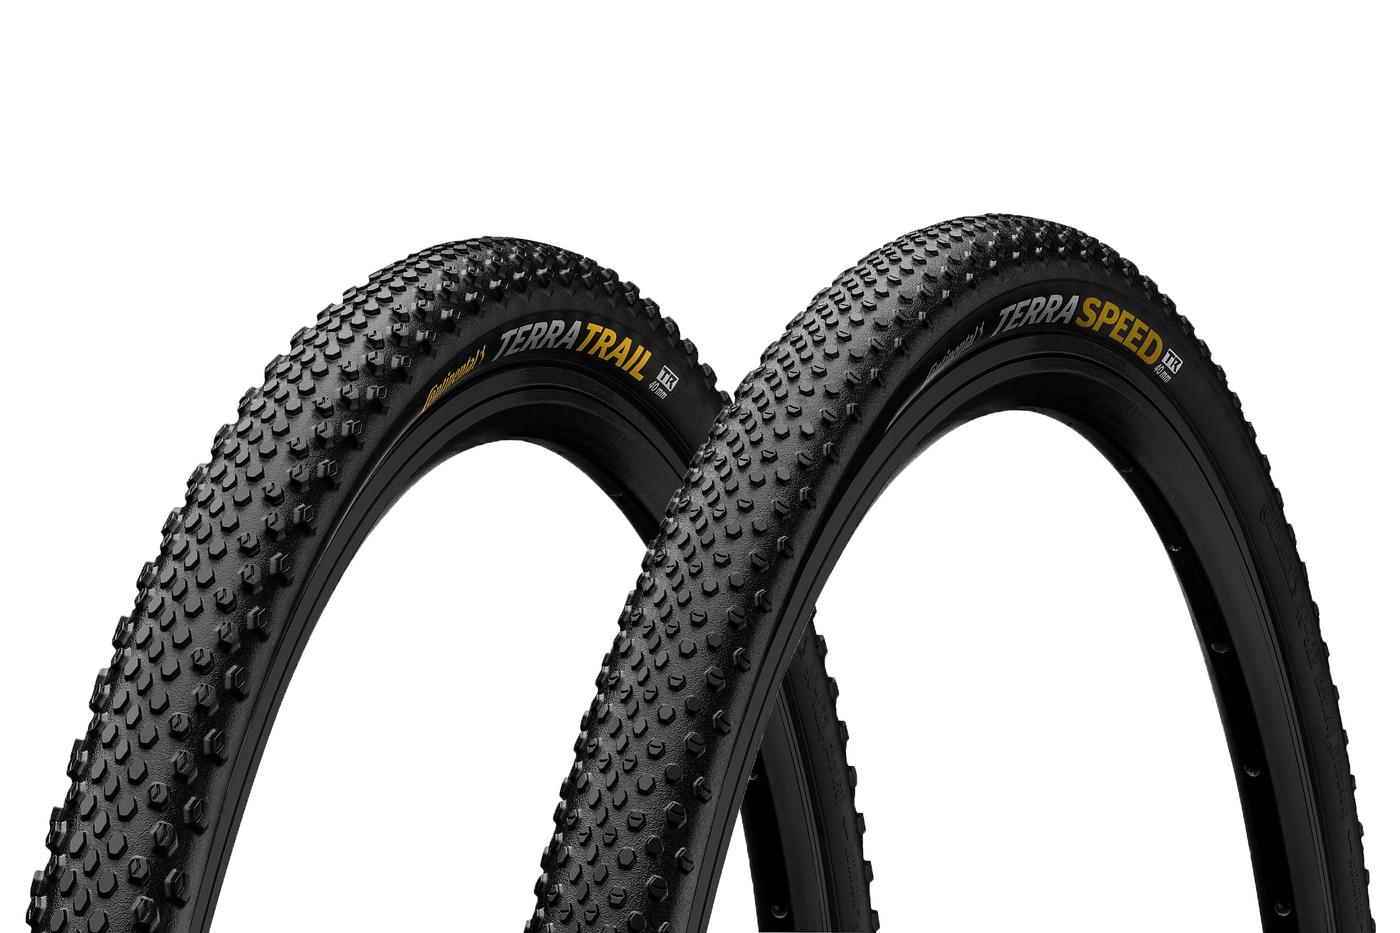 Continental Rolls Out new Gravel Grinding Terra Trail and Terra Speed Tires 3